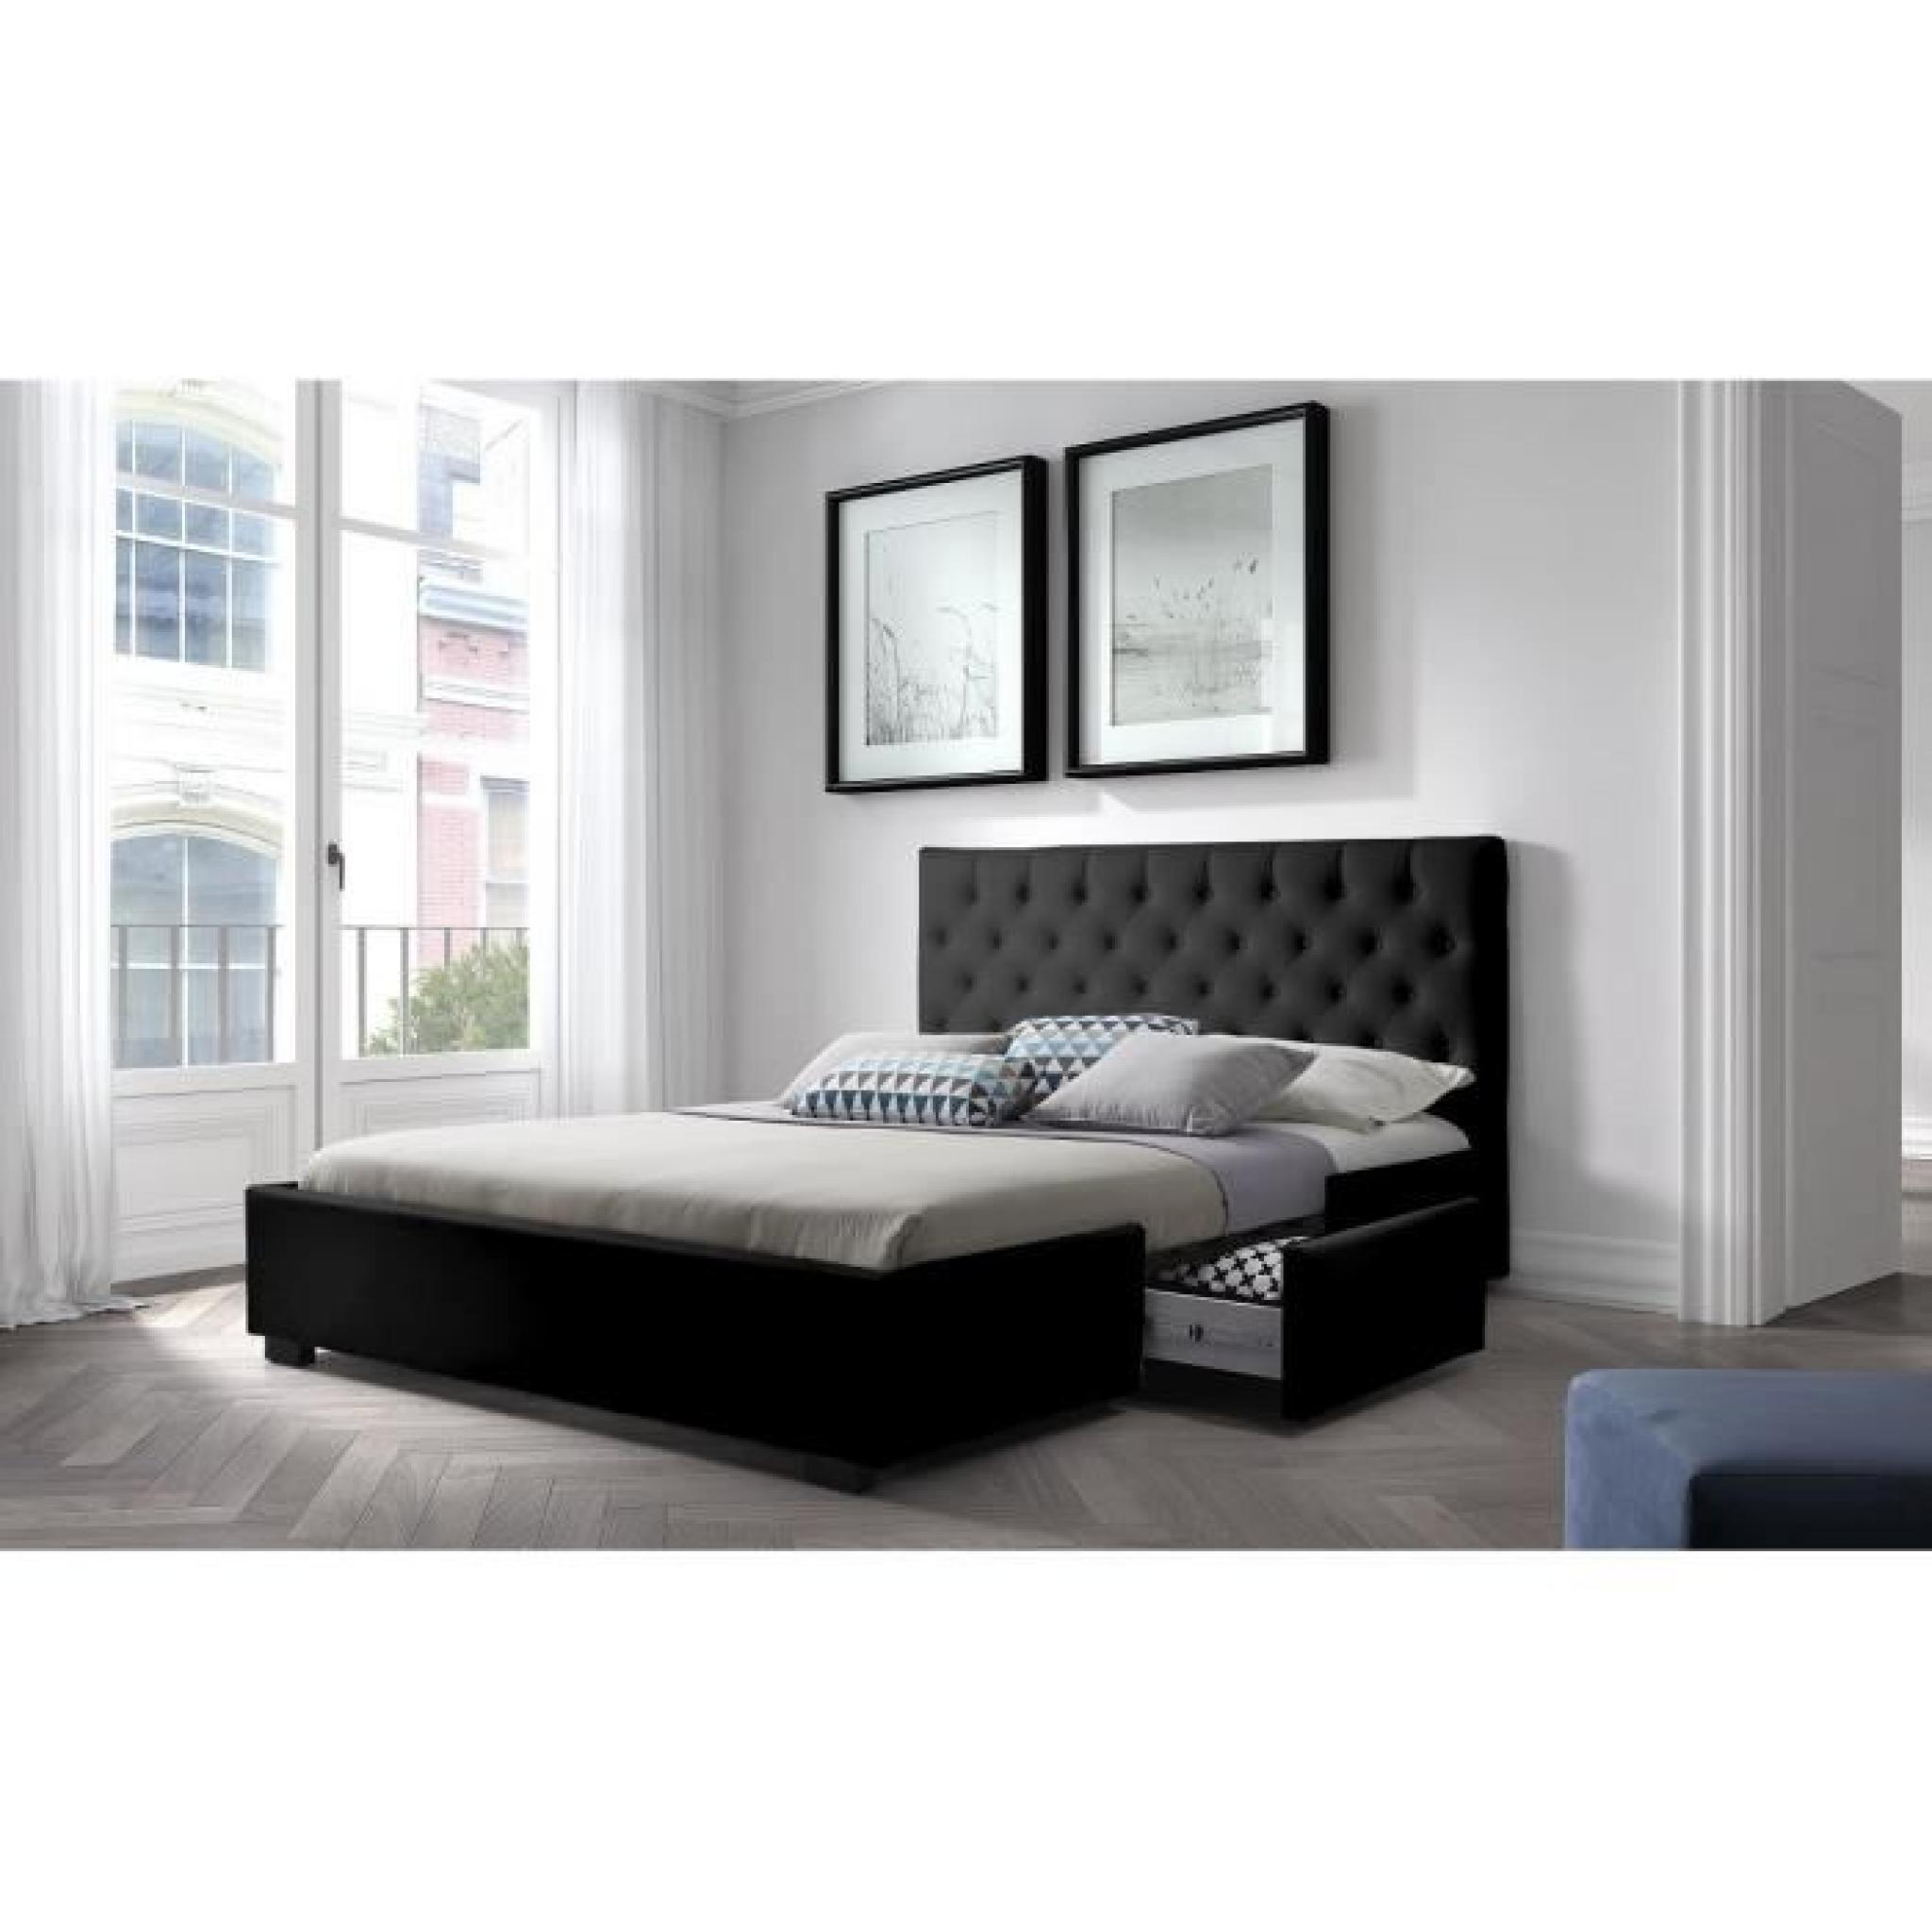 sommier 180x200 pas cher lit avec sommier bois 180x200 en. Black Bedroom Furniture Sets. Home Design Ideas